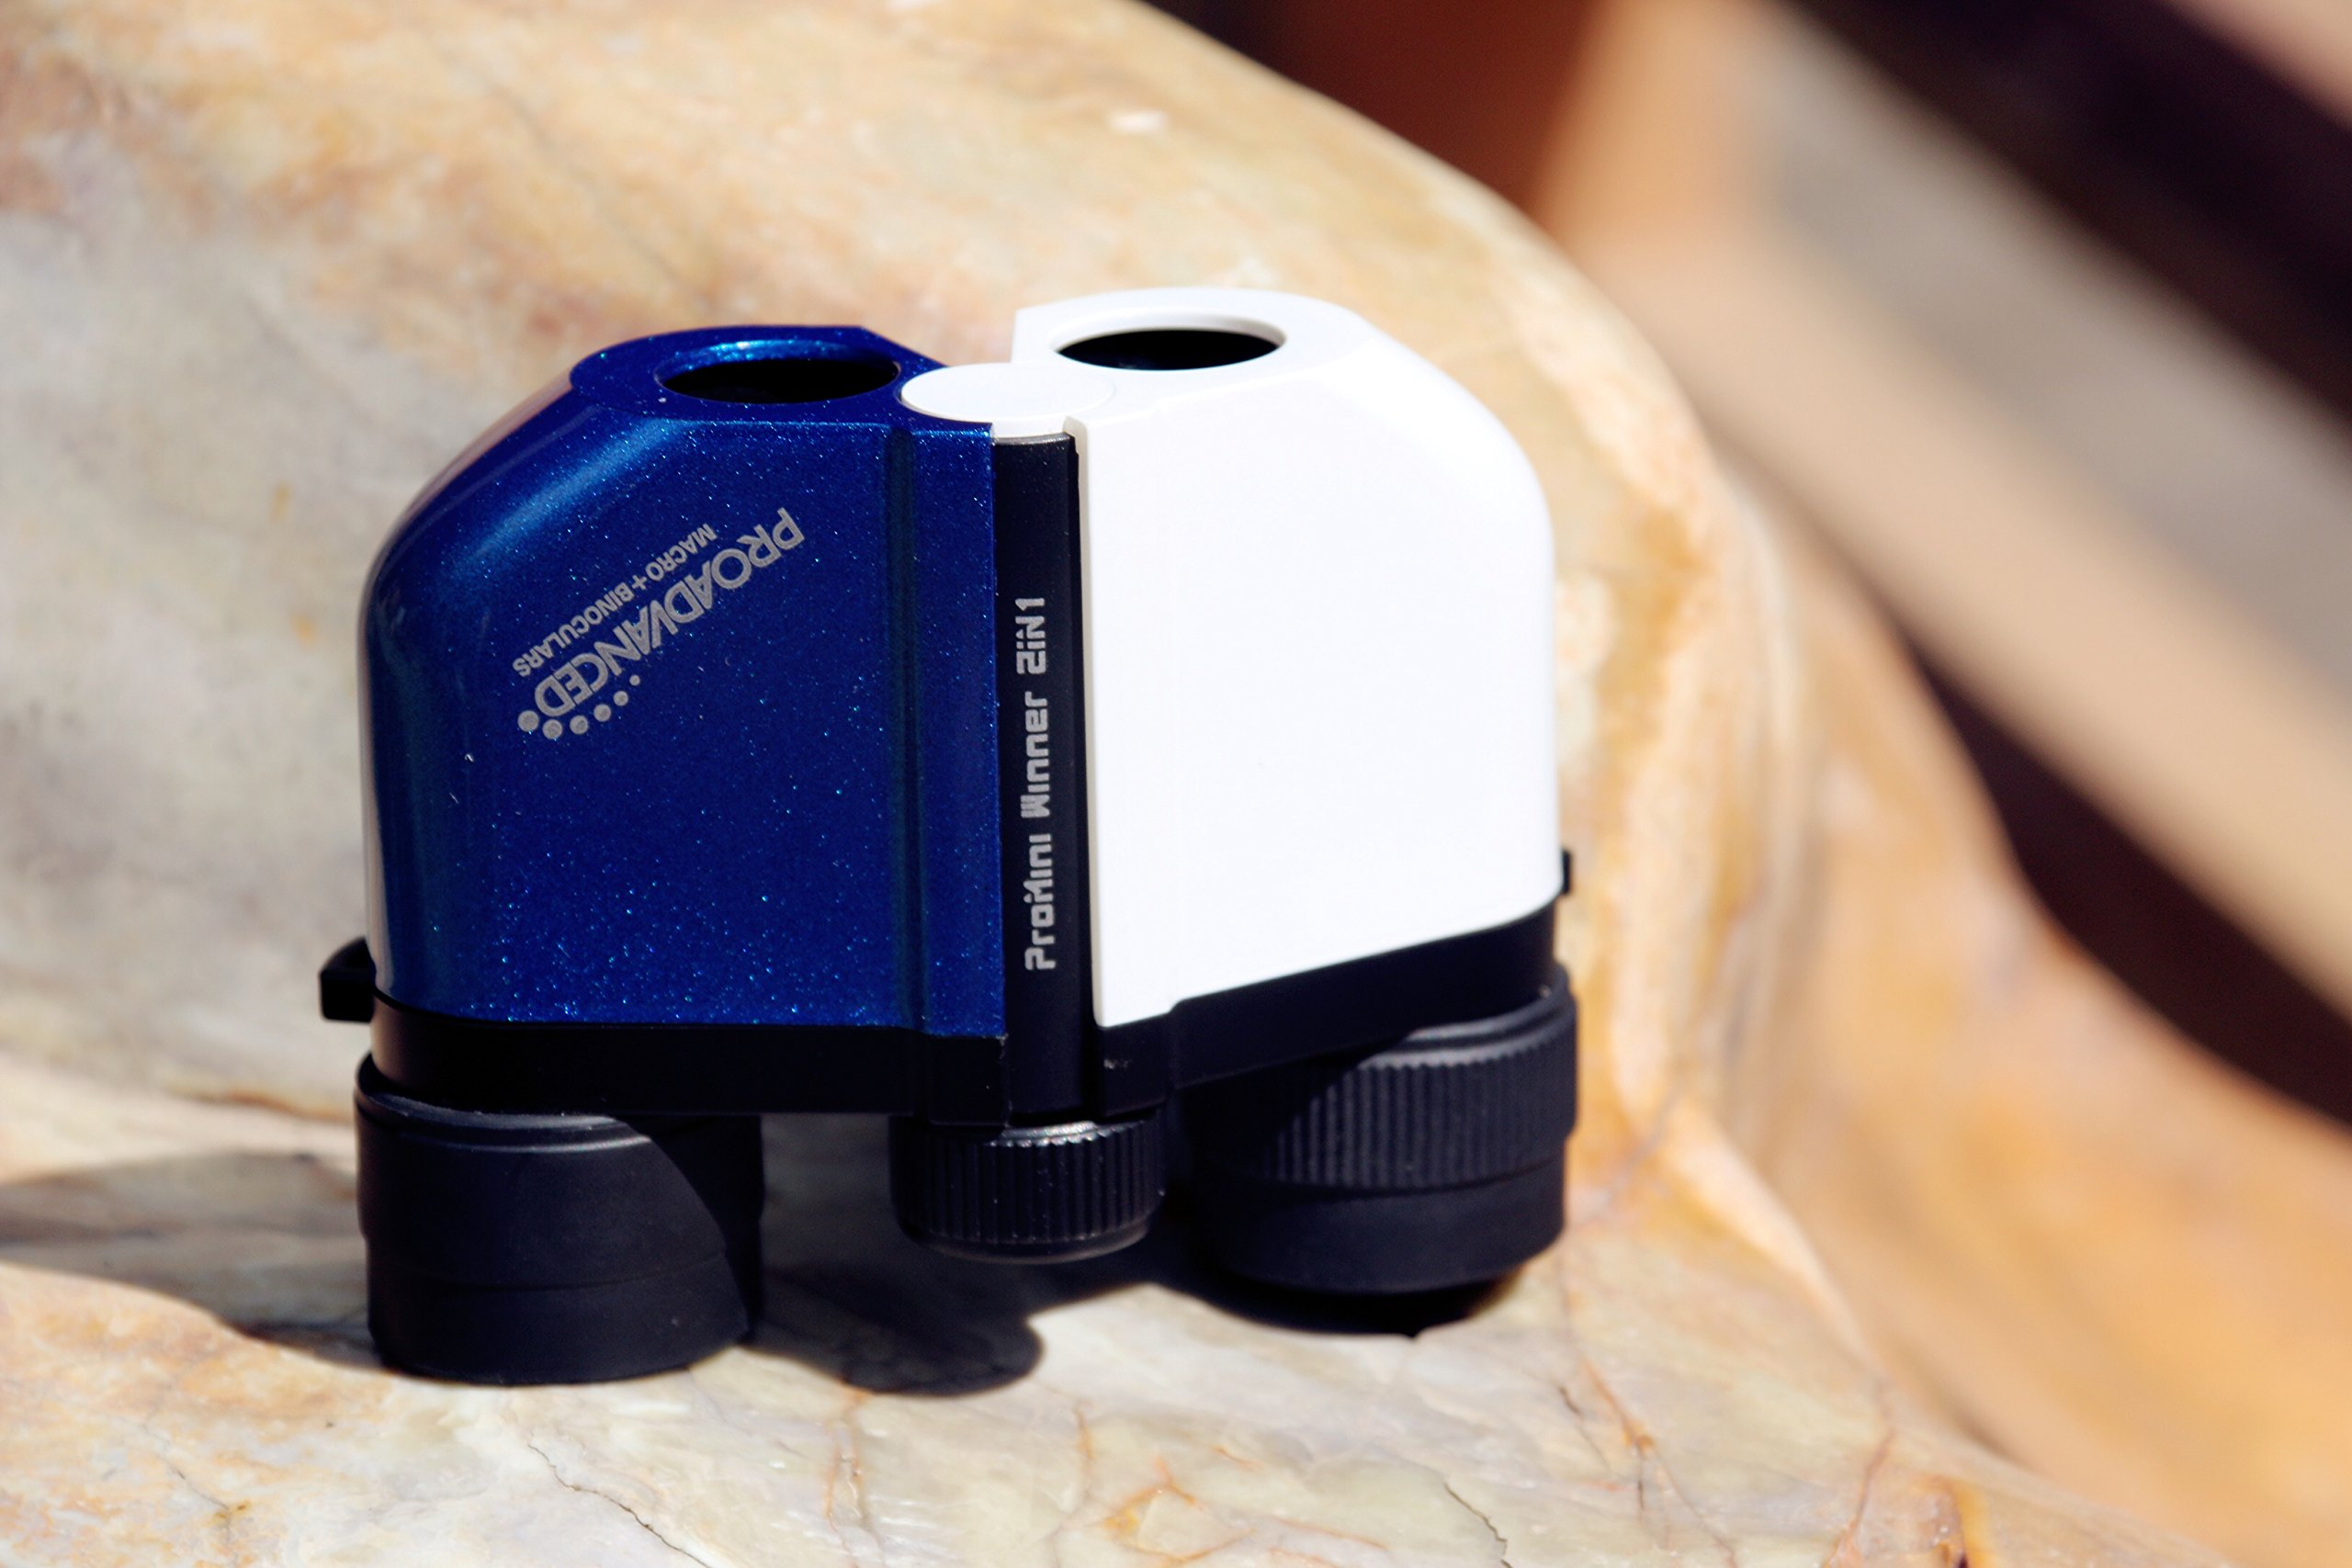 Pocket Eagle Winner 2in1 -''More Than Just Binocular'': Macro Binocular - Micro-Distance - Close-Focusing - Best Gifts For Kid, For Elder, For Travel, For Concert (White & Blue)